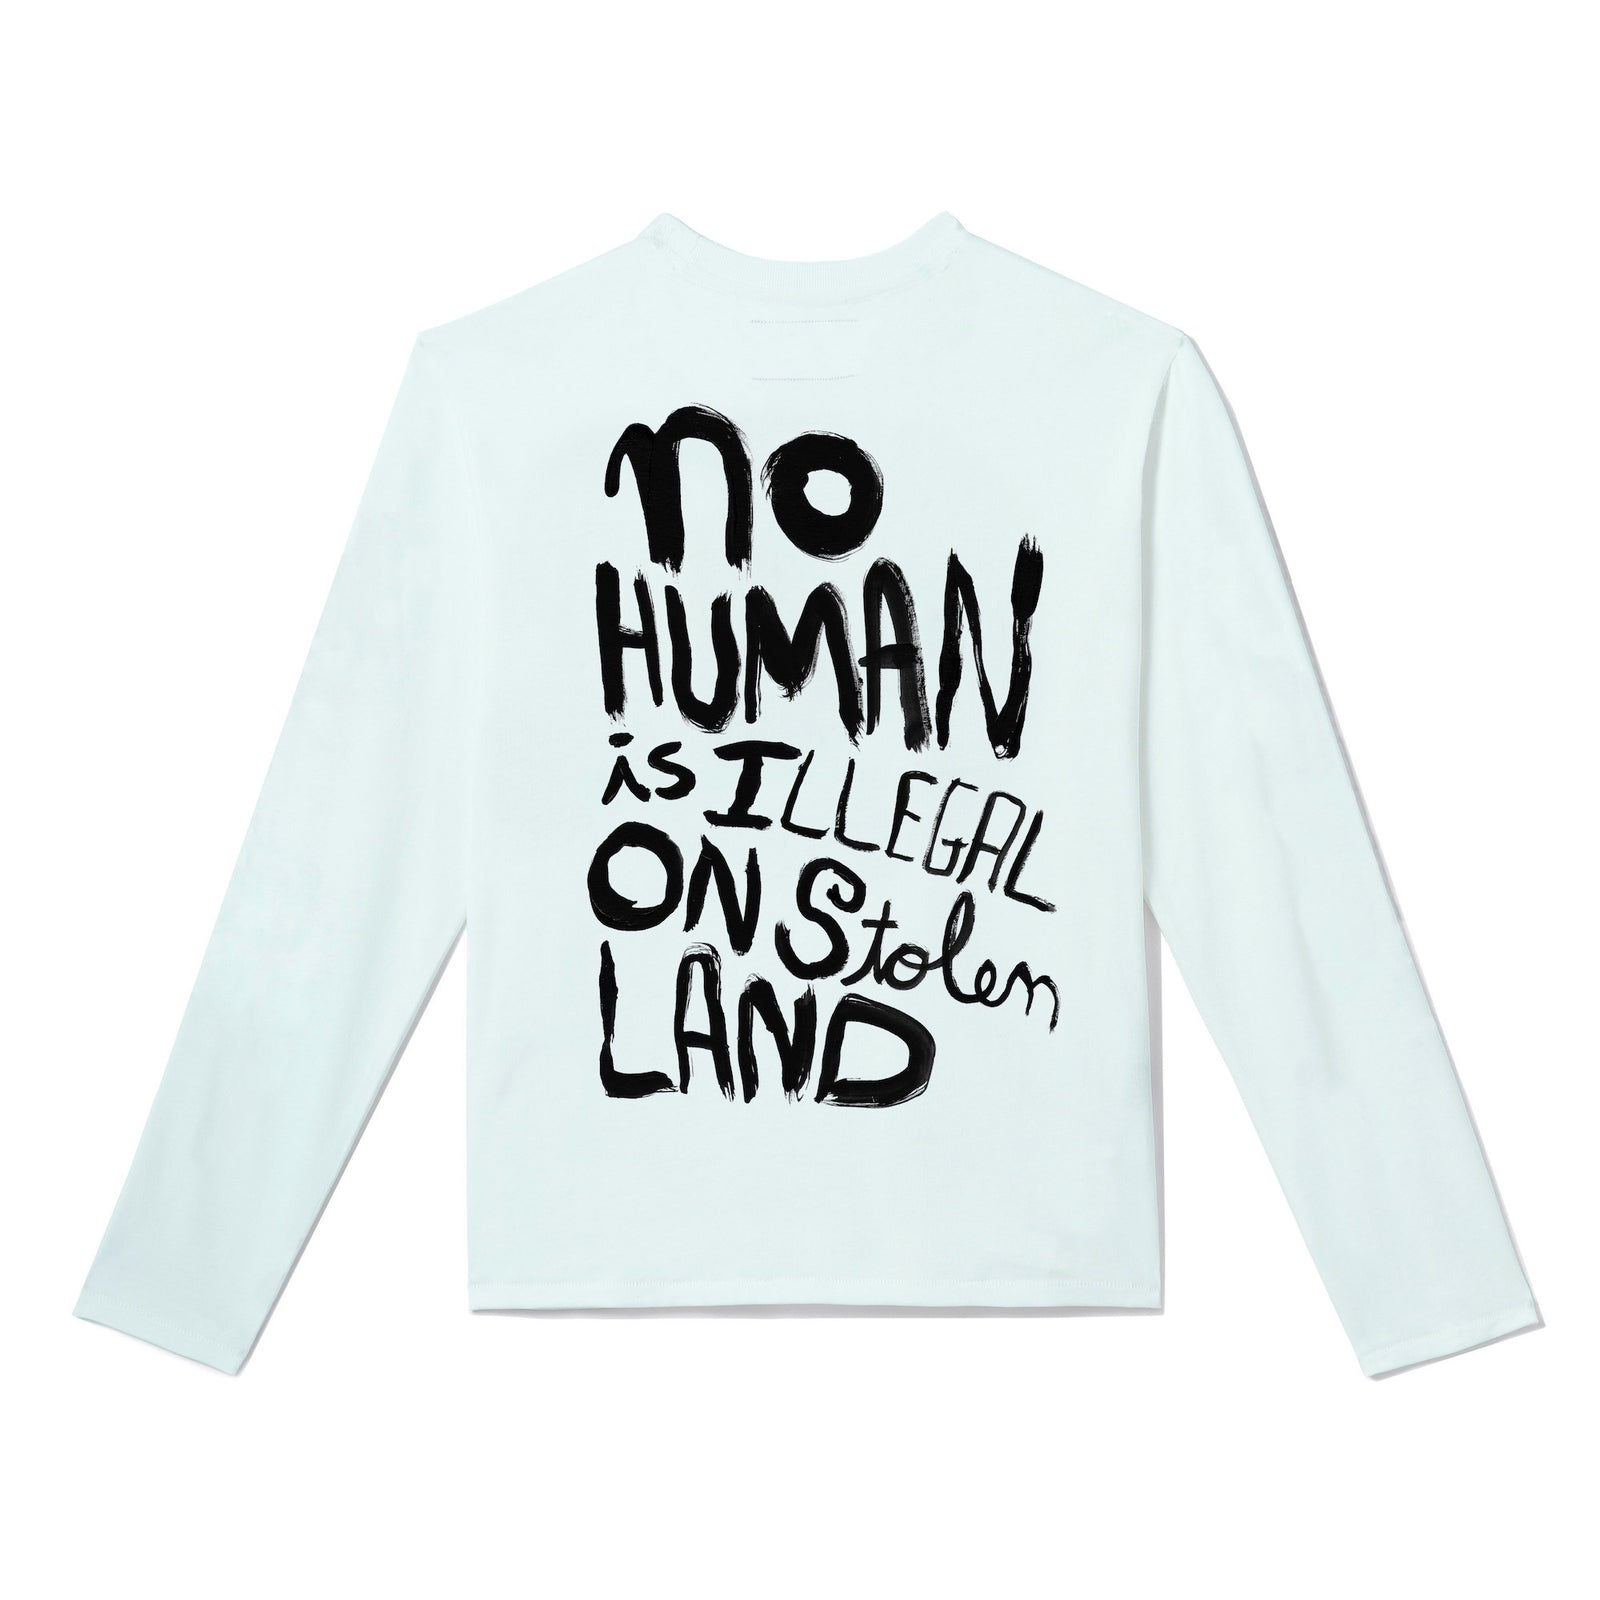 No Human iS illegal (Mint)